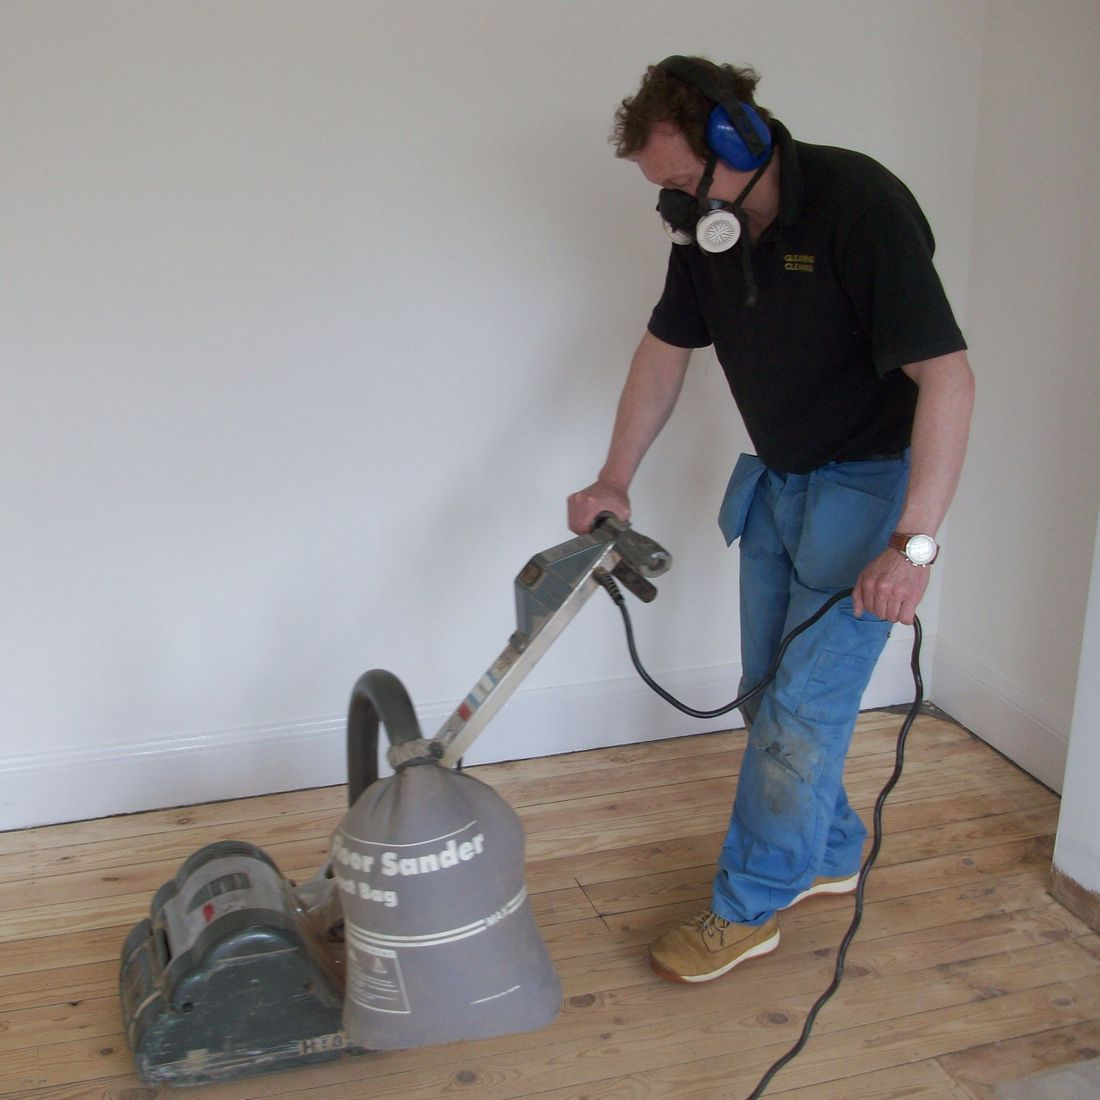 Floor sanding Business Opportunity for sale